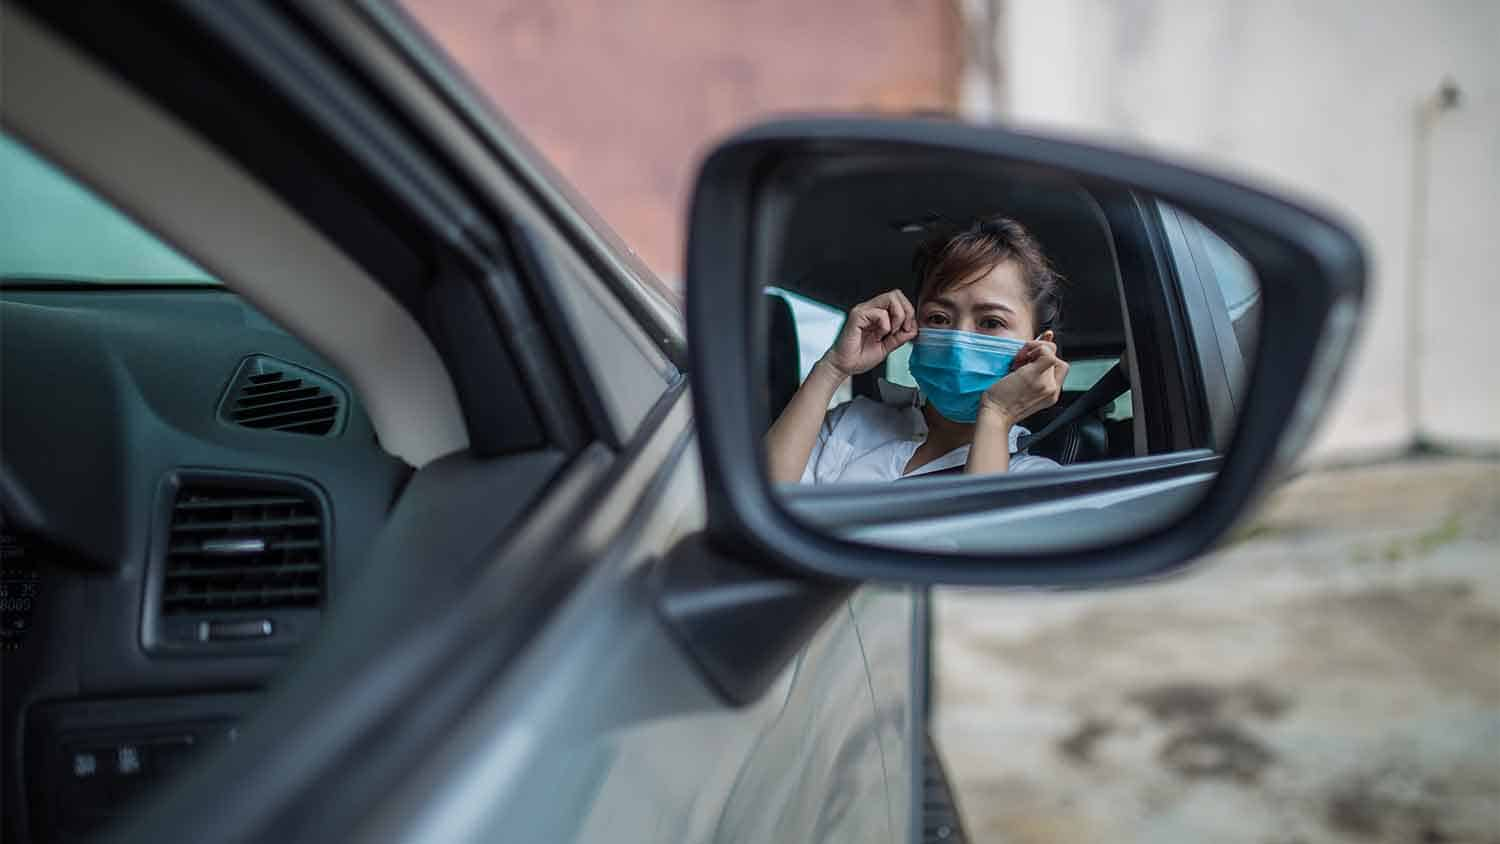 reflection of a woman putting on a face mask in a car wing mirror